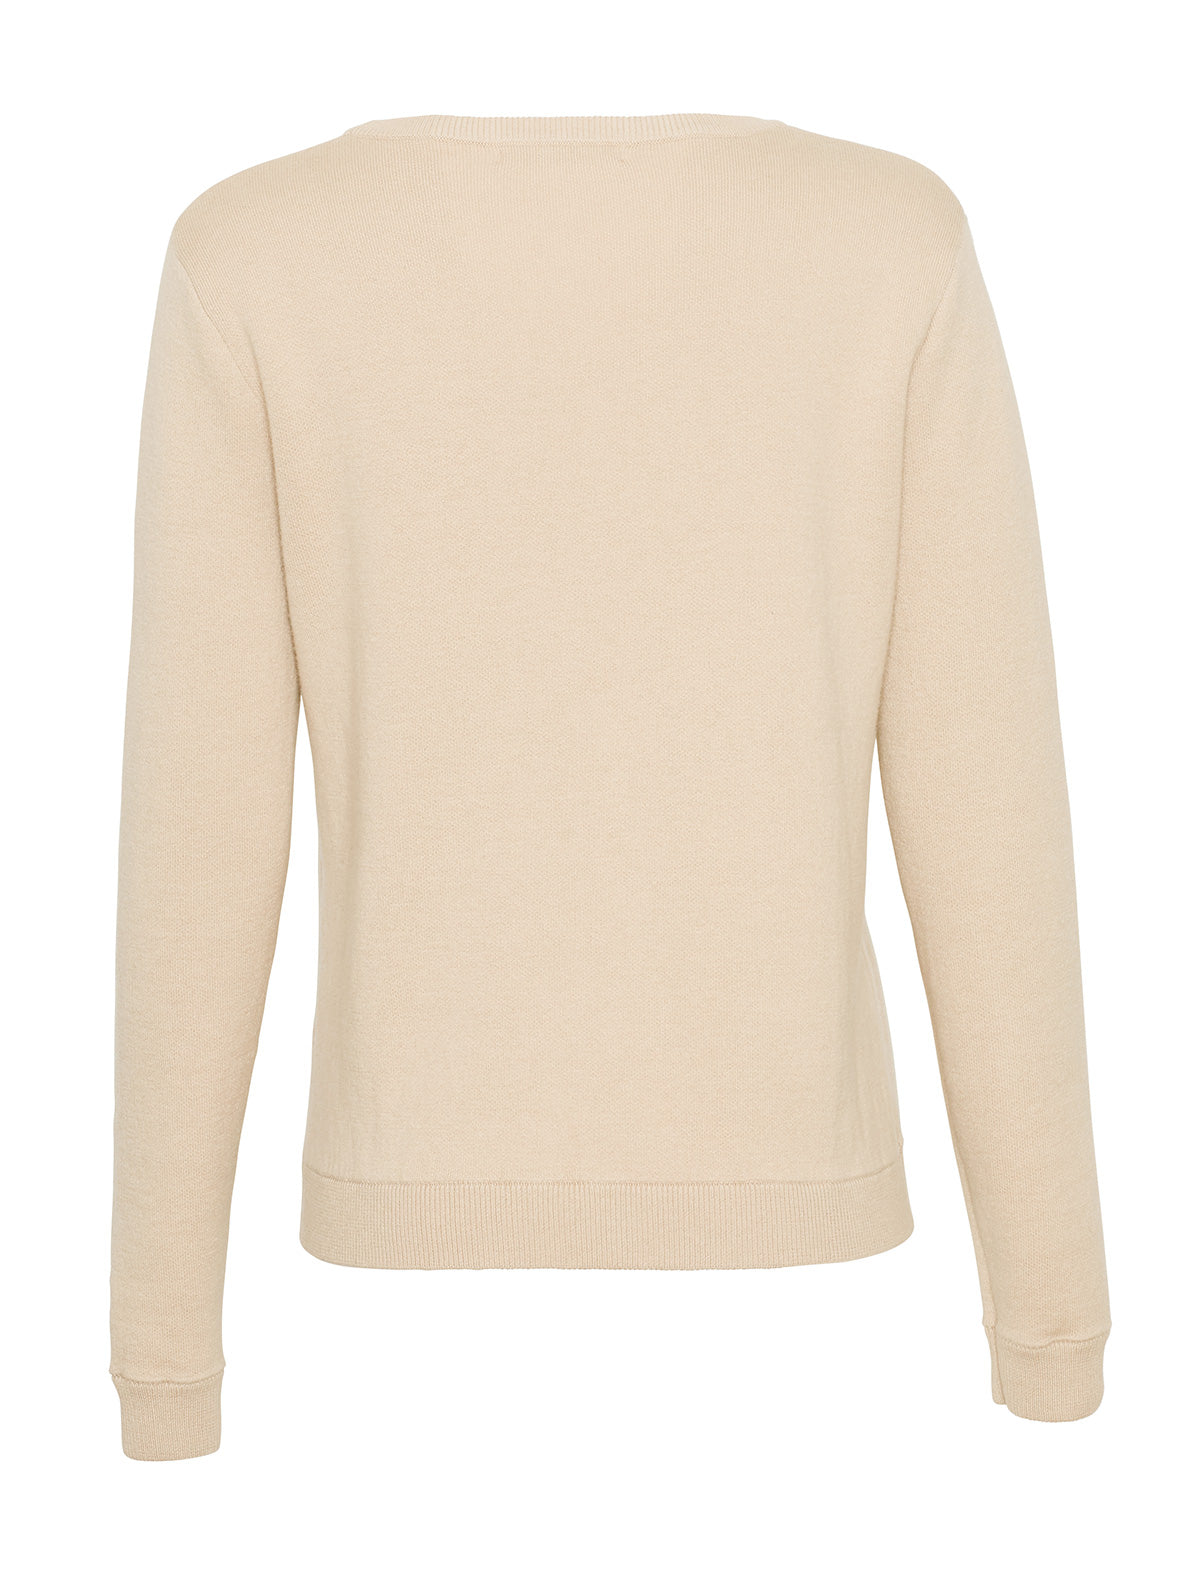 COTTON CASHMERE CLASSIC CREWNECK, BLUSH